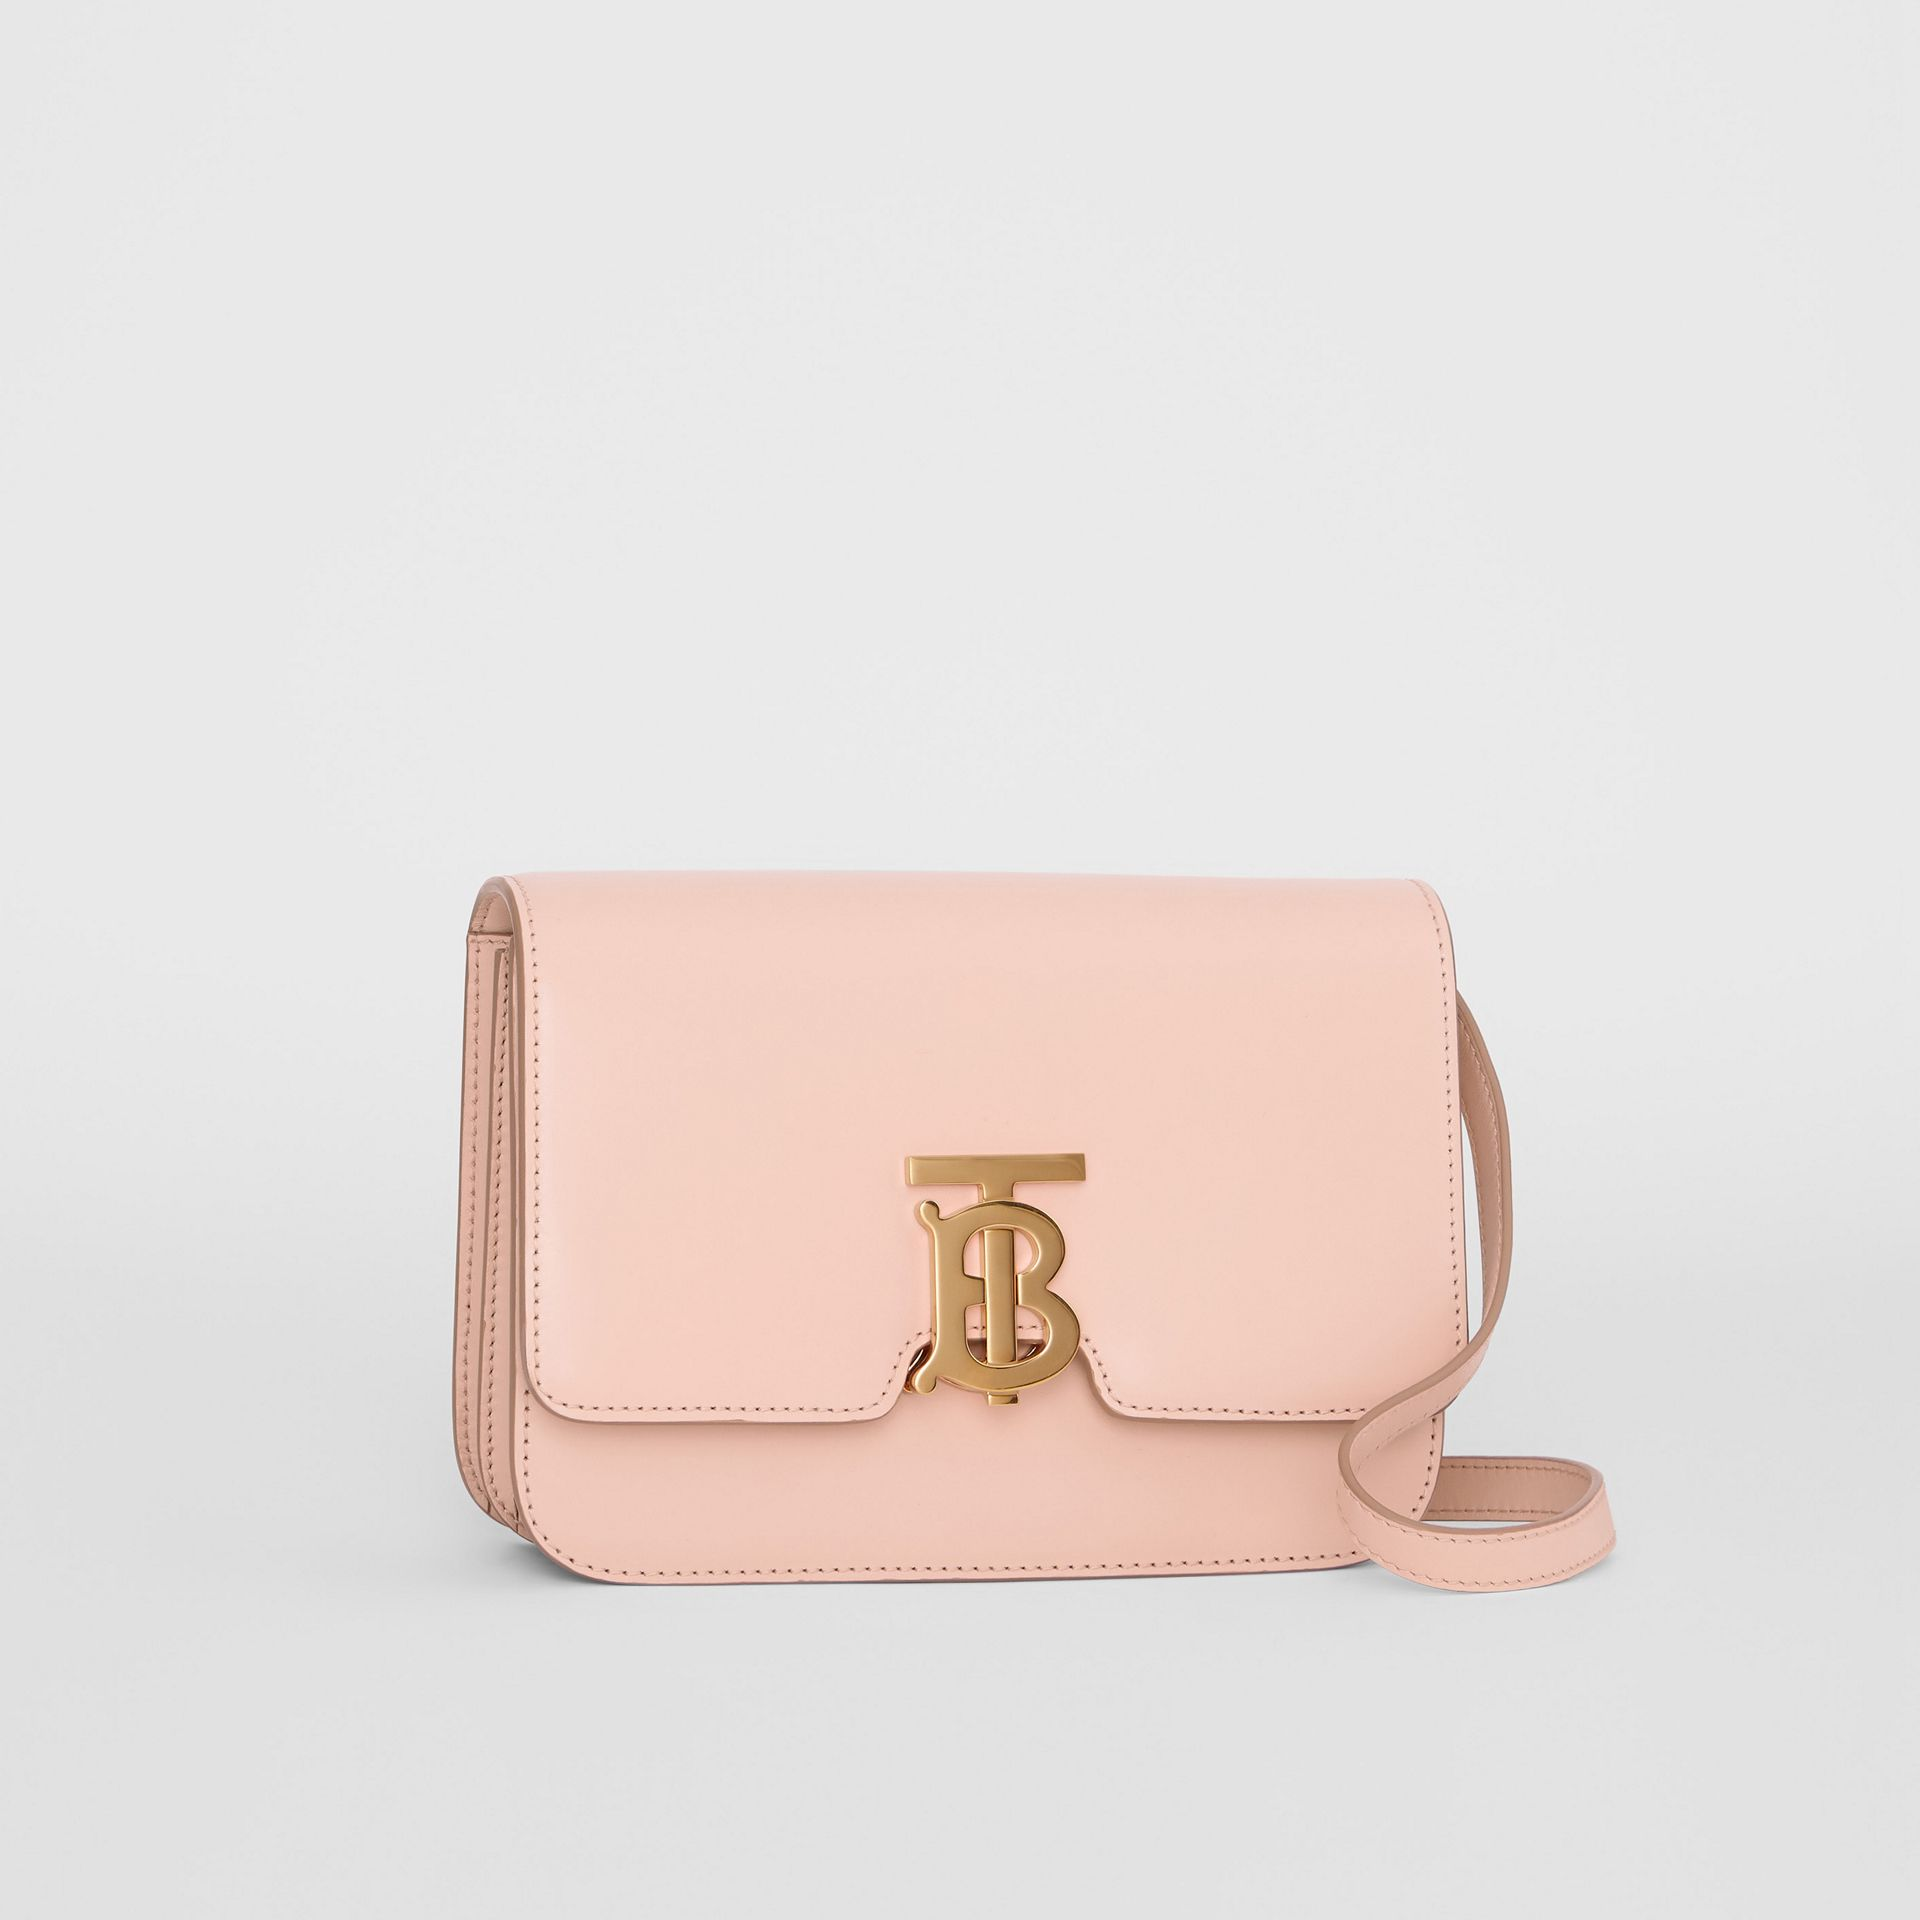 Small Leather TB Bag in Rose Beige - Women | Burberry Canada - gallery image 6